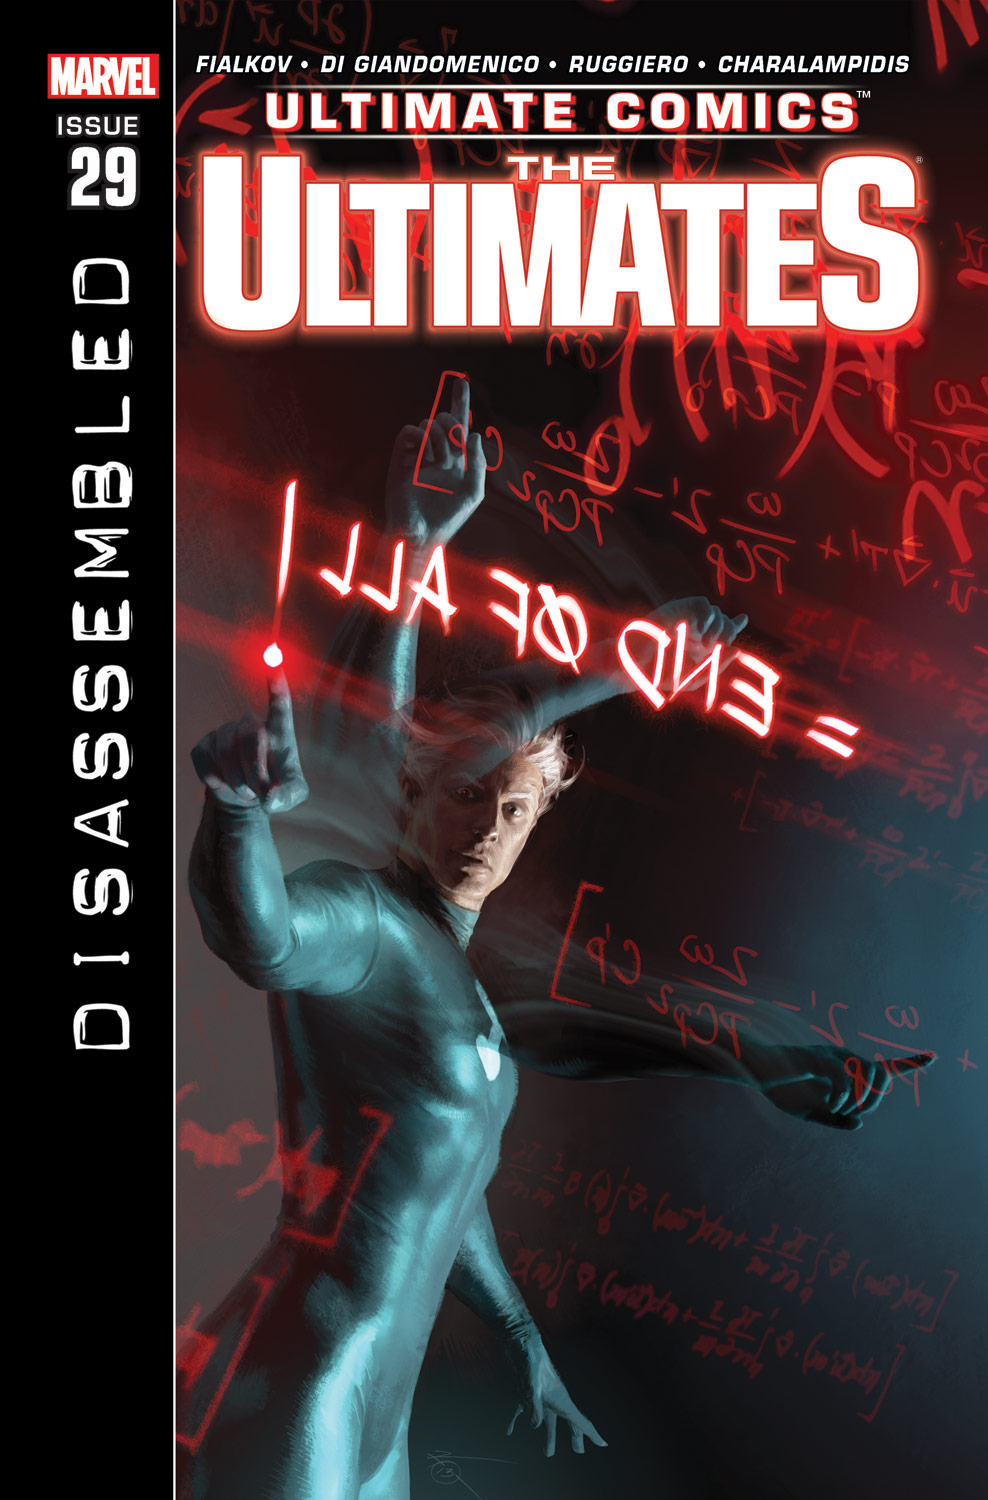 Ultimate Comics Ultimates (2011) #29